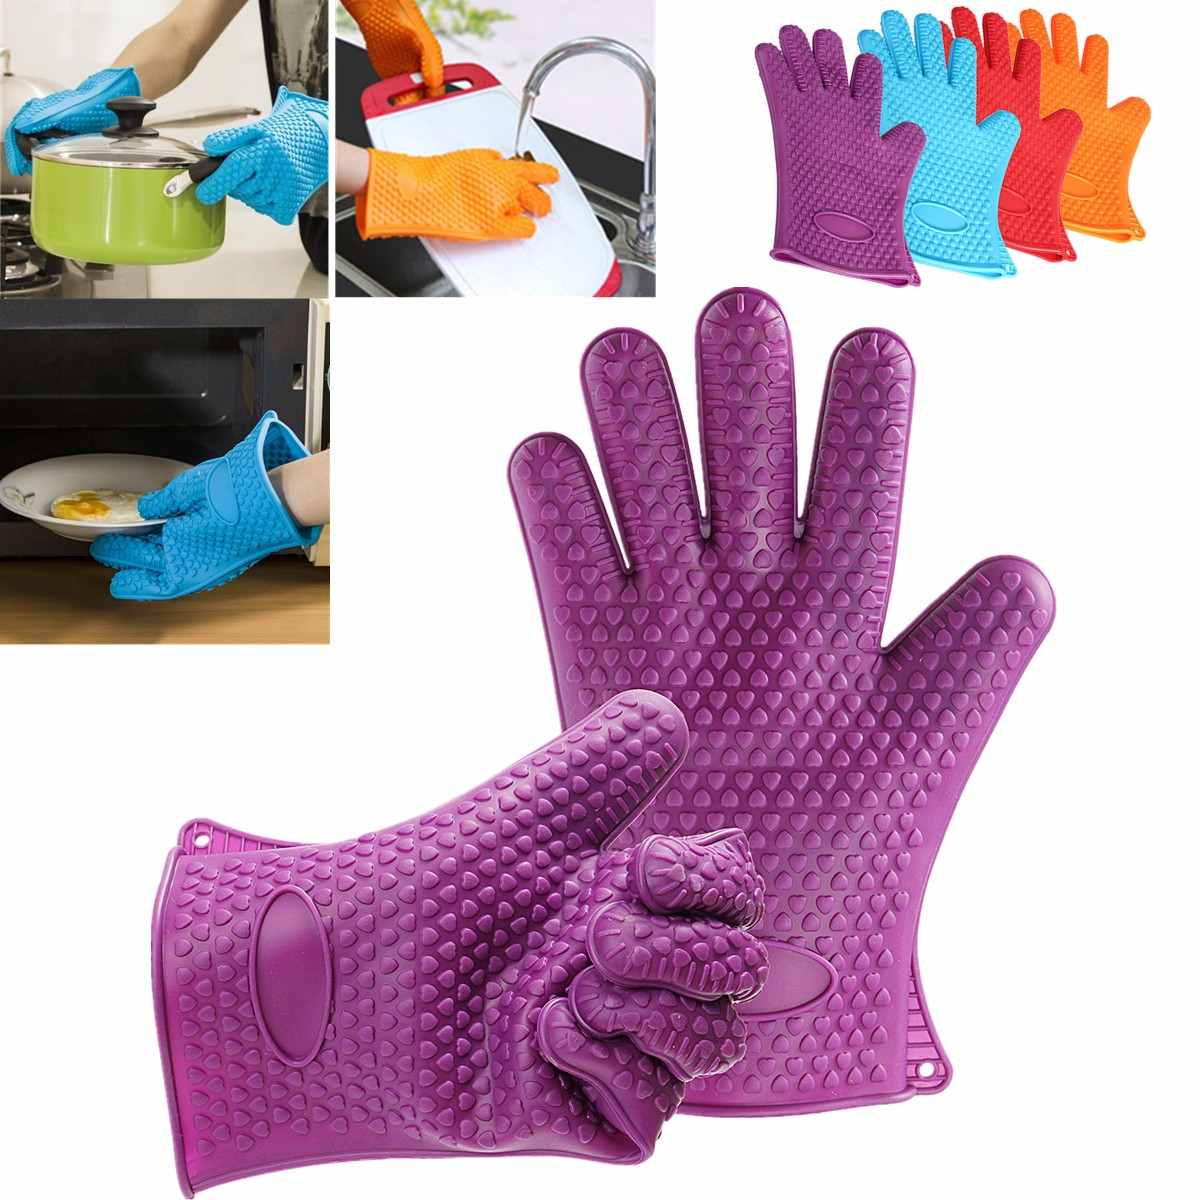 1 Pair food grade Heat Resistant Silicone Kitchen barbecue oven glove Cooking BBQ Grill Glove Oven Mitt Baking Protective gloves funssor ultimaker 2 um2 dual extrusion kit nozzle hot end kit set assembly print head kit for 1 75mm 3mm 3 d printer parts